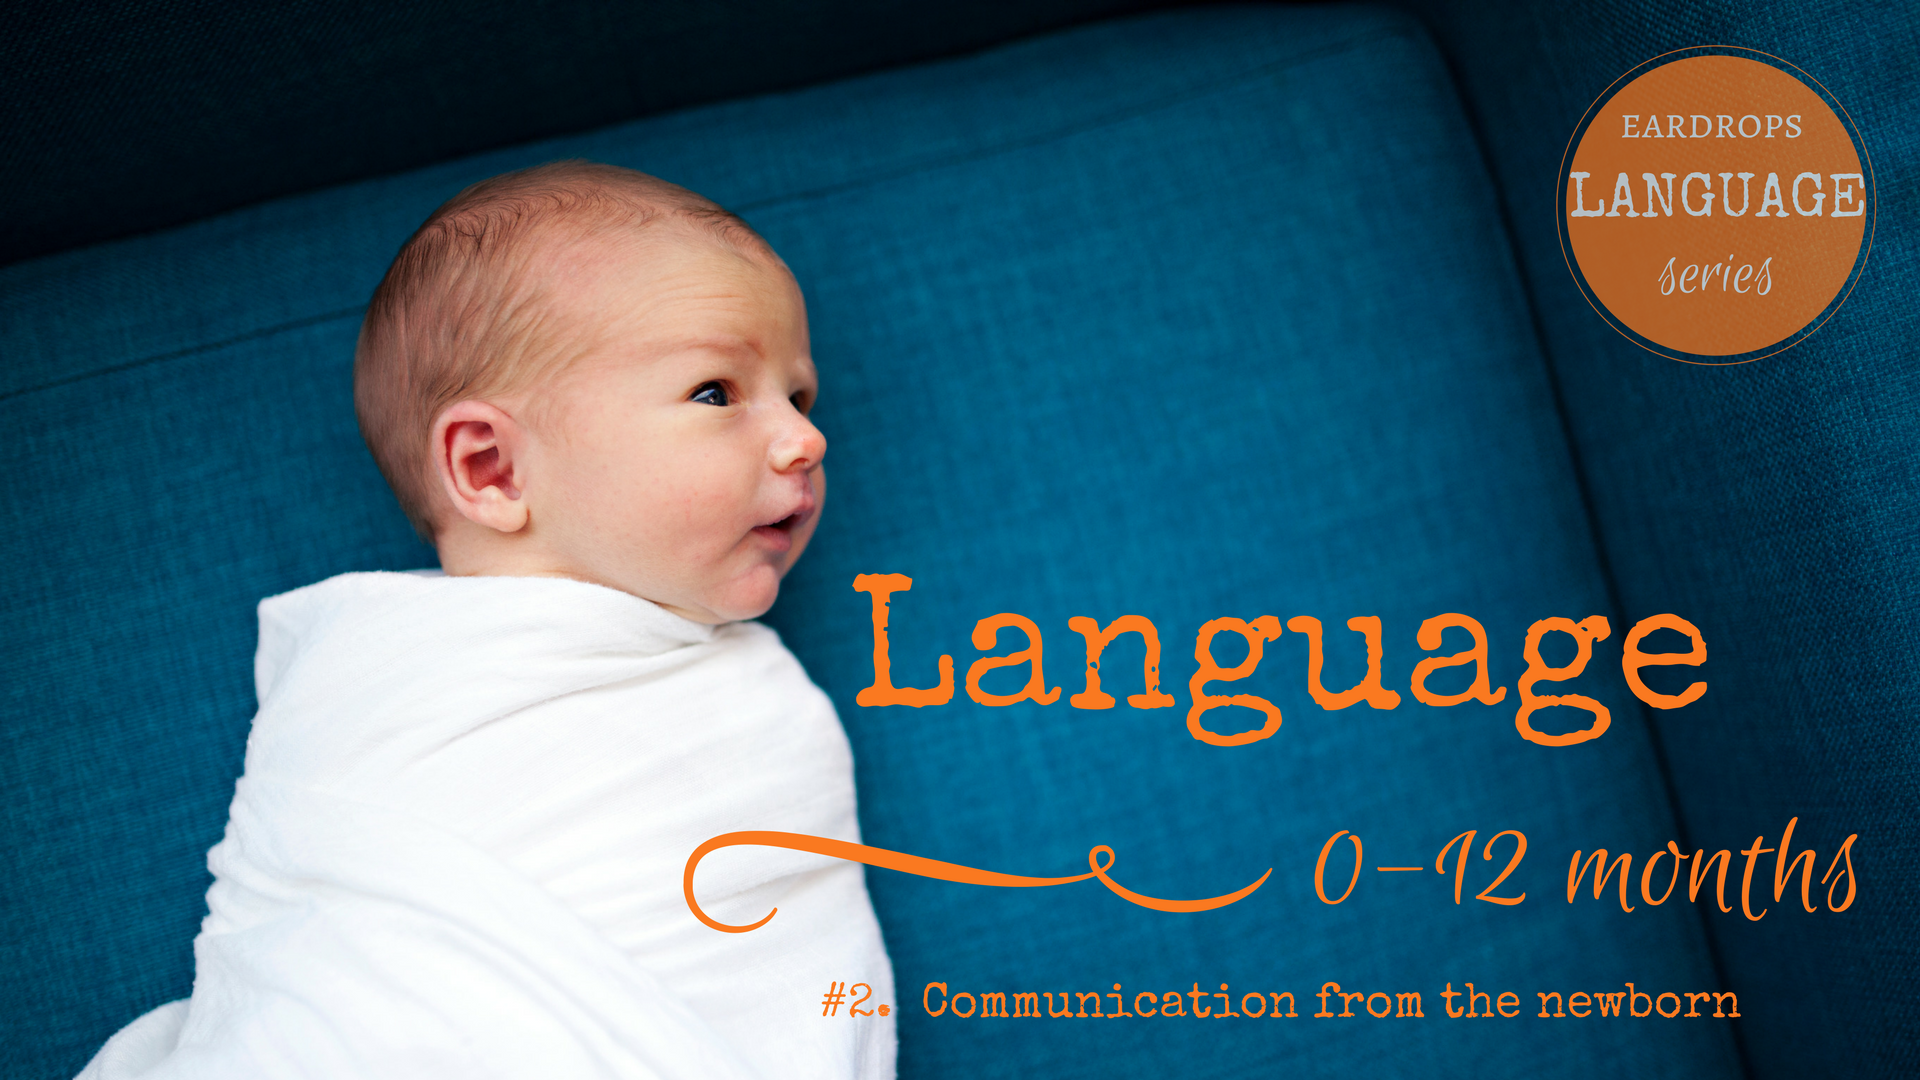 communication from the newborn - eardrops language series